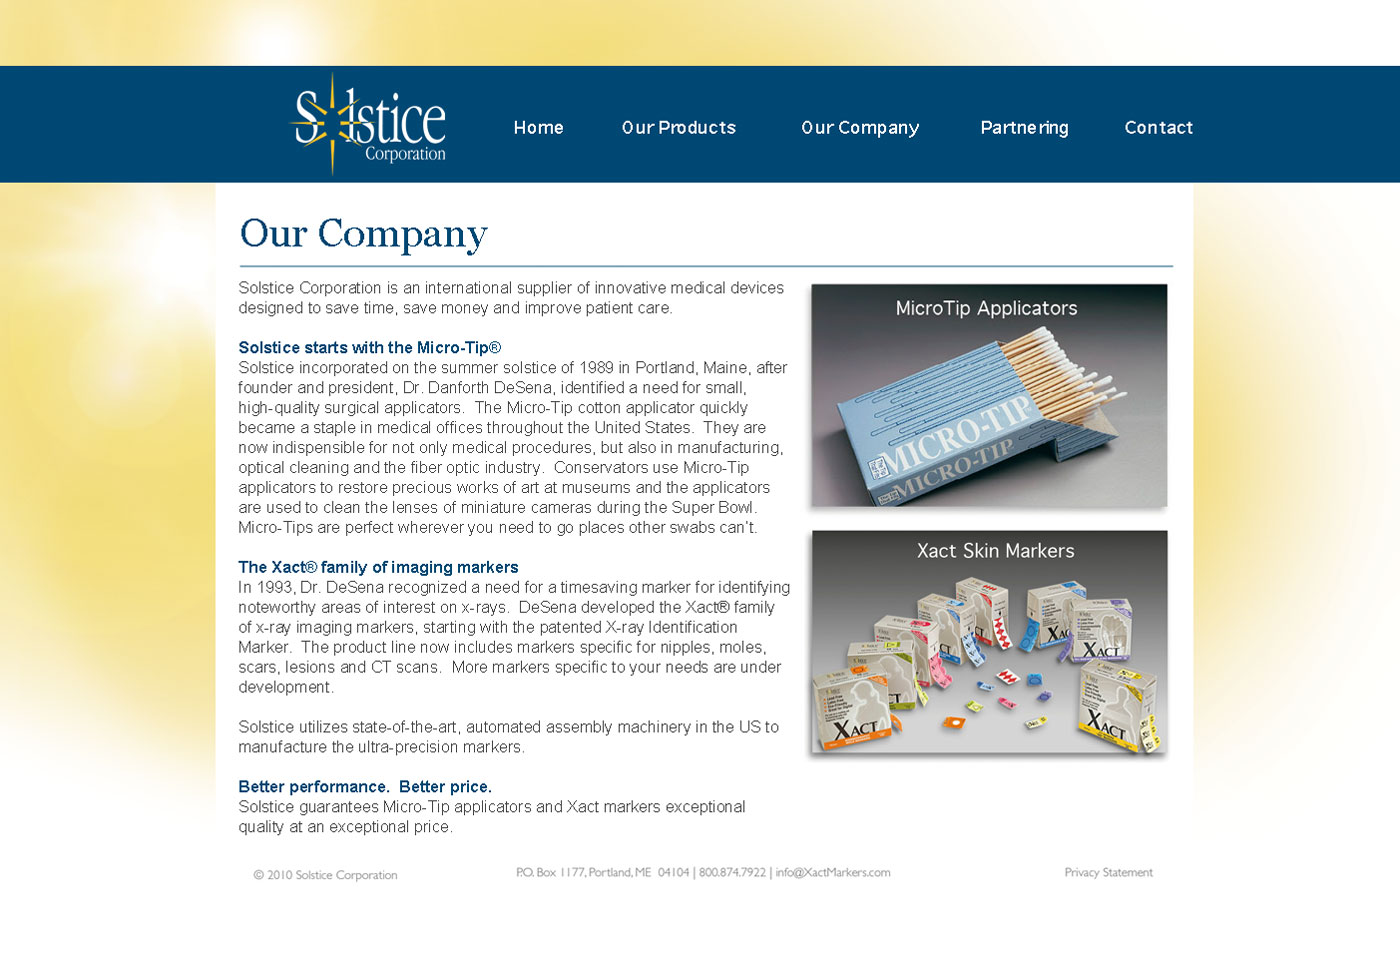 Solstice Corporate About Our Company Page